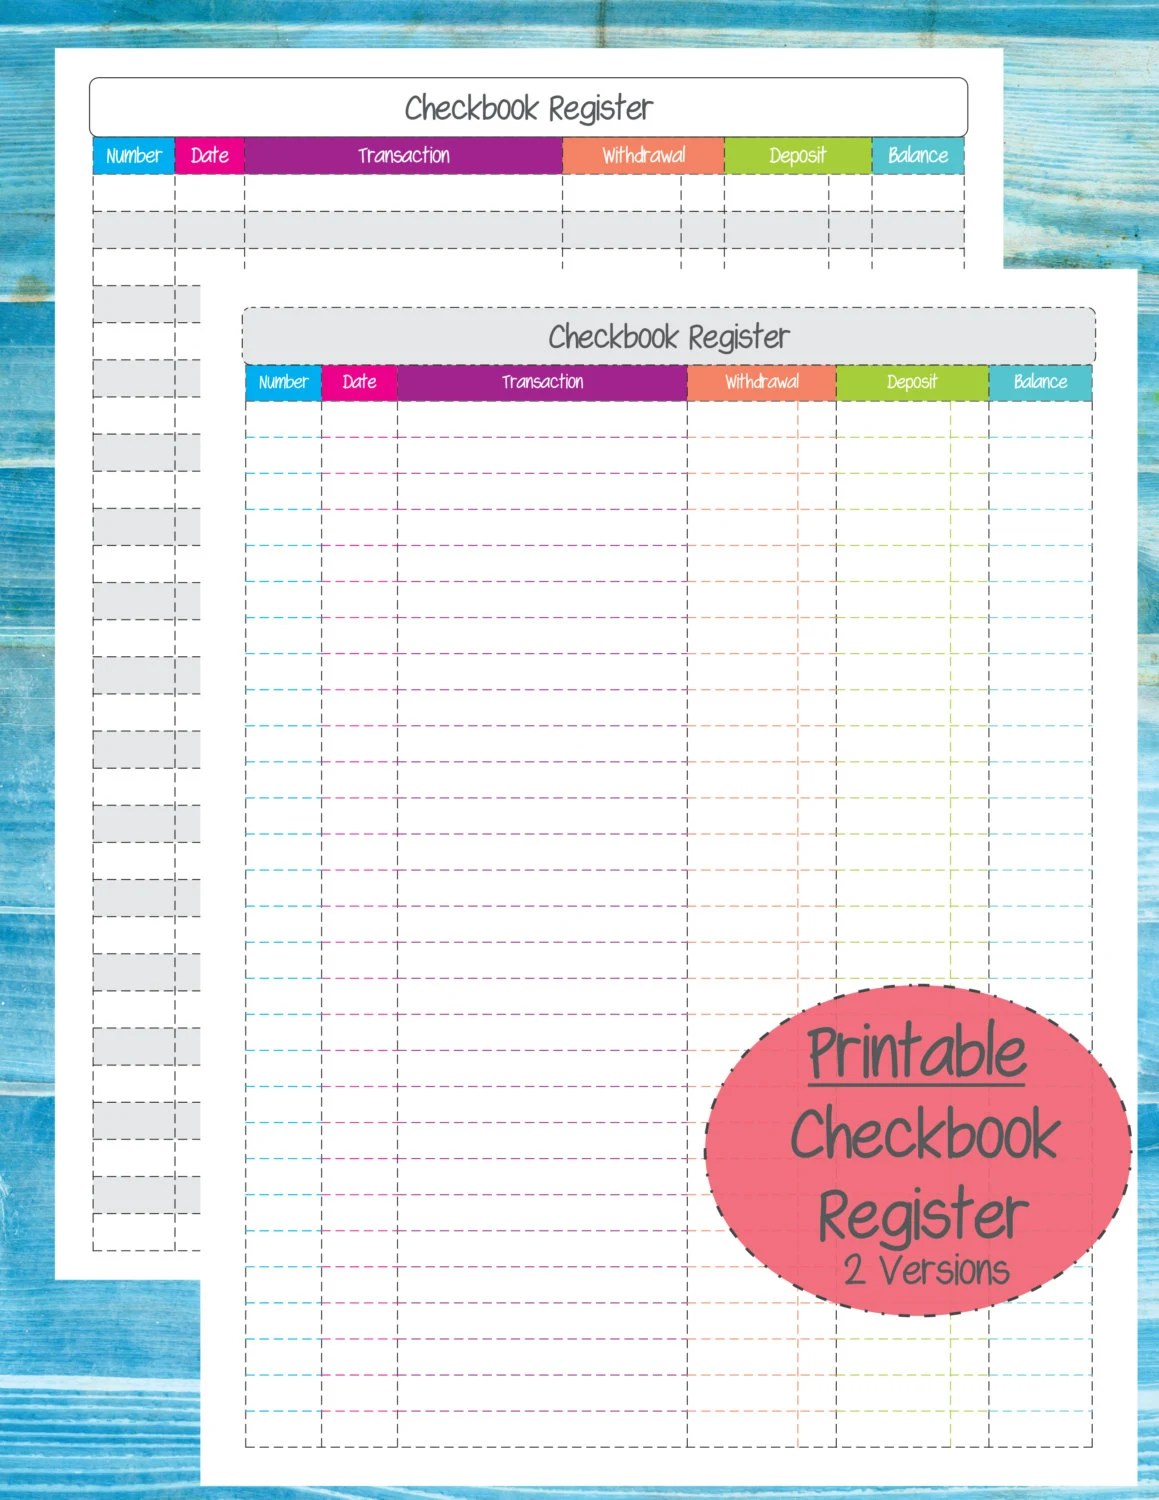 Printable Checkbook Register By Mariereneecreations On Etsy